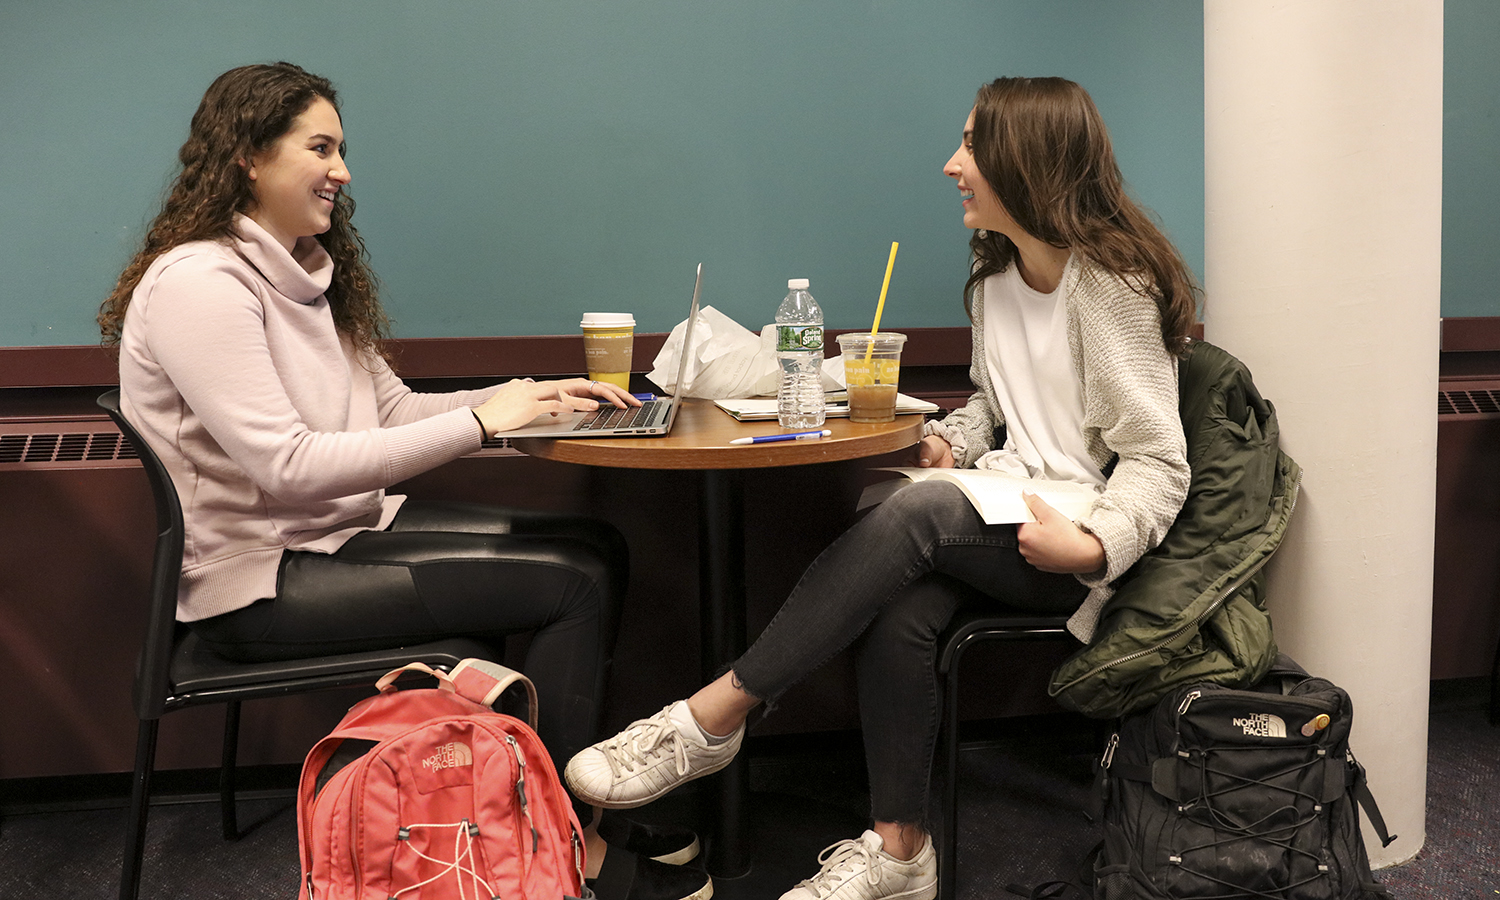 Victoria Vincelette '21 and Nicole Spada '21 chat while working in the Warren Hunting Smith Library.